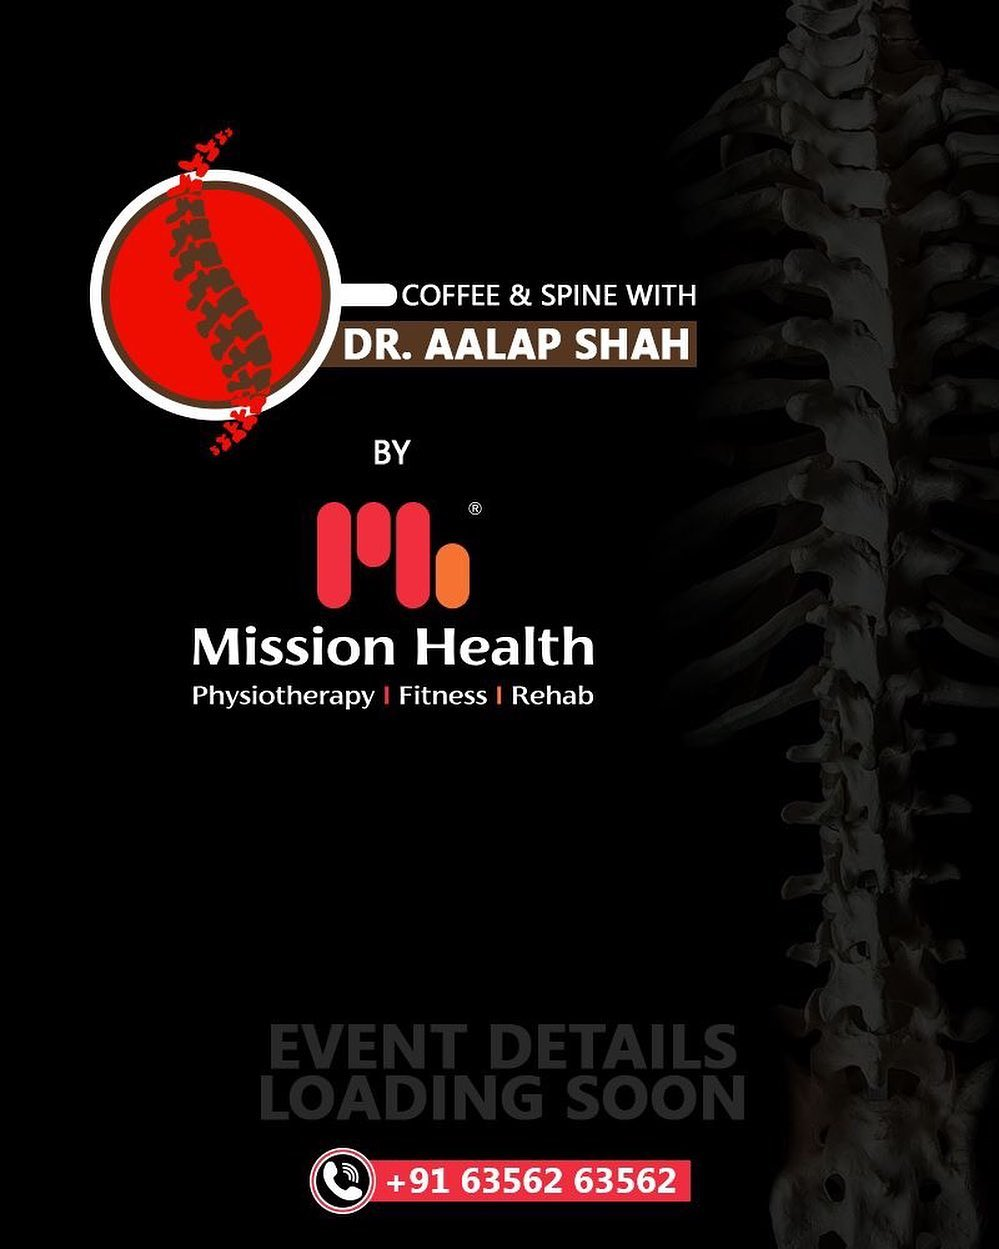 Coffee and Spine with Dr. Aalap Shah by Mission Health coming soon!  Stay tuned for more updates... Call: +916356263562  Visit: www.missionhealth.co.in  #CoffeeAndSpineWithDrAalapShah #DrAalapShah #SuperSpecialitySpineClinic #SpineClinic #BackPain #NeckPain #SlippedDisc #MissionHealth #MissionHealthIndia #AbilityClinic #MovementIsLife